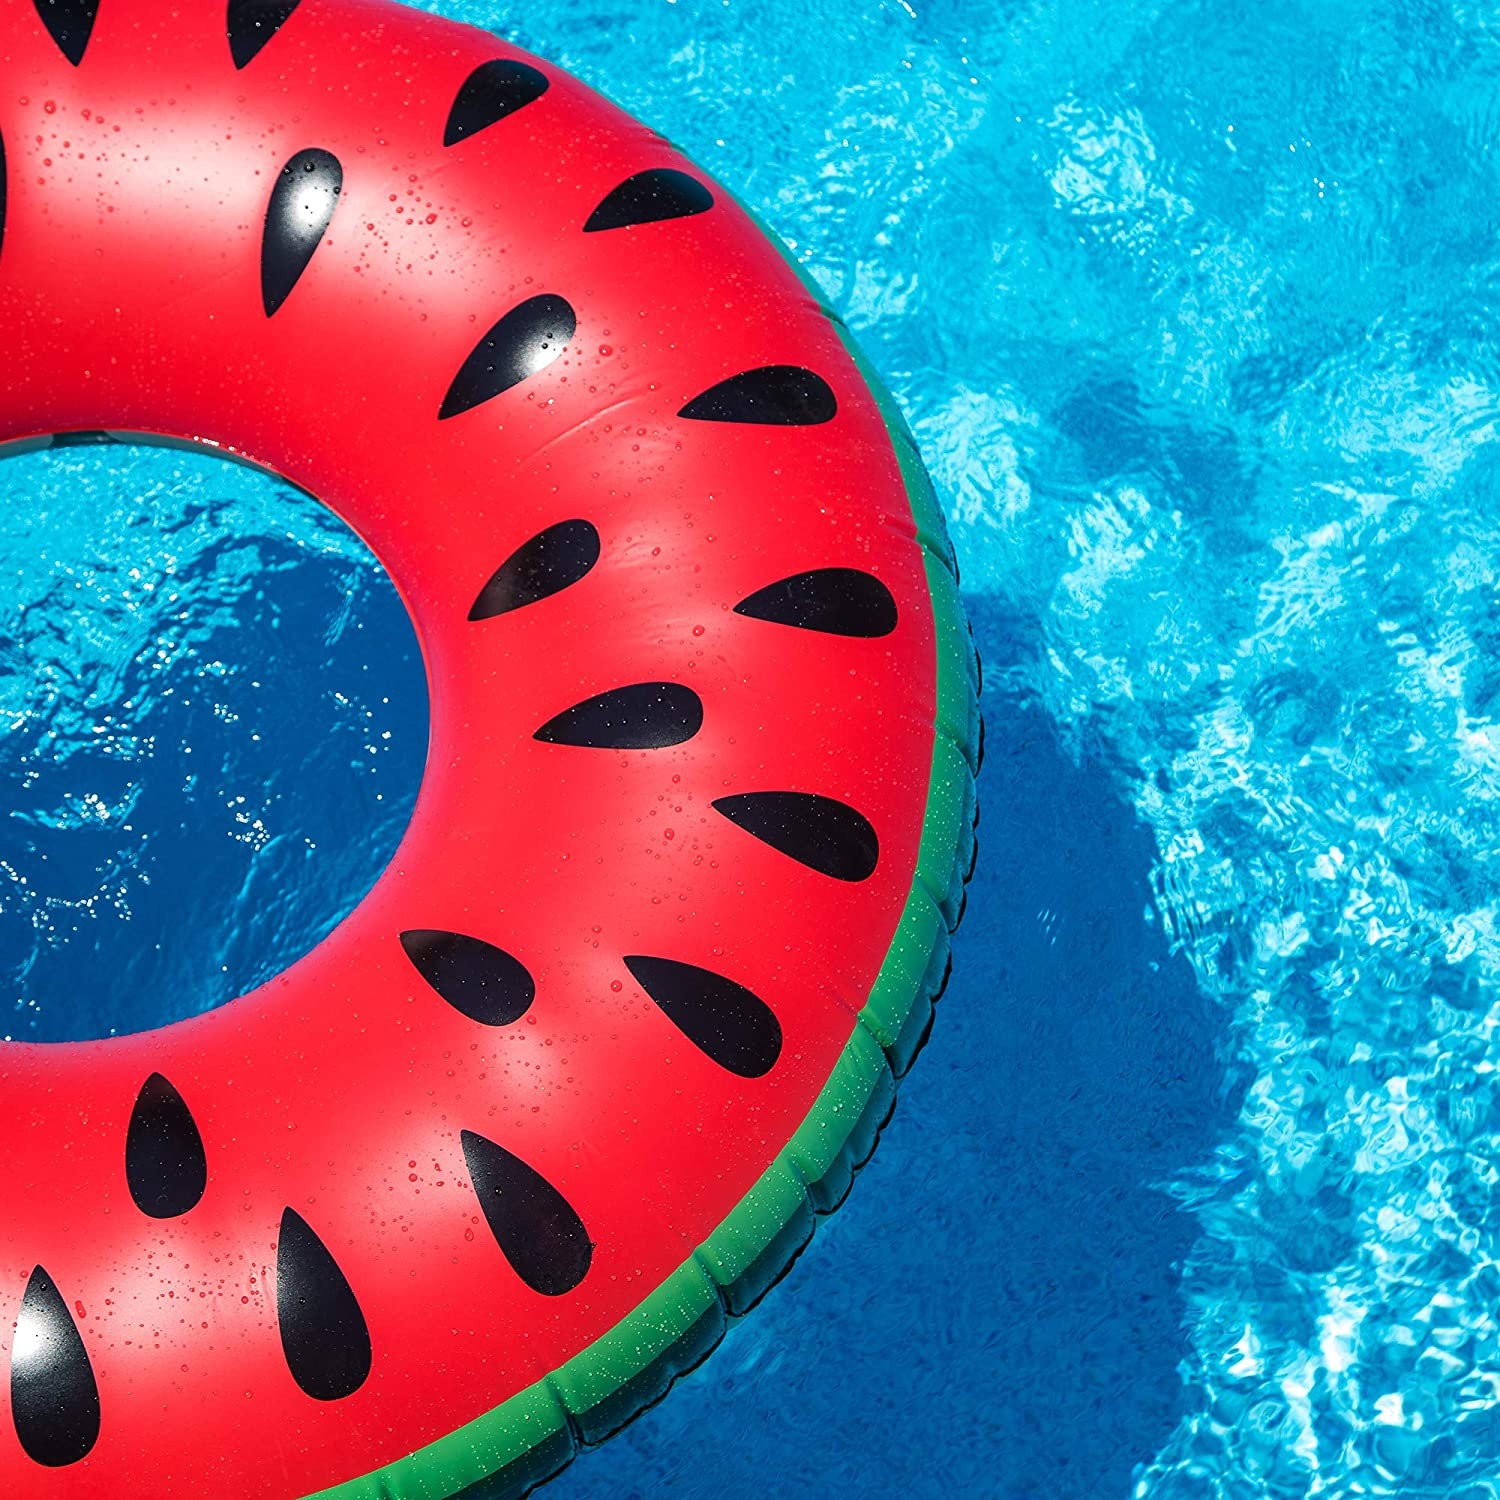 Emergency Patch Kit Included BigMouth Inc Giant Inflatable Penny Candy Pool Float Novelty Swim Tube